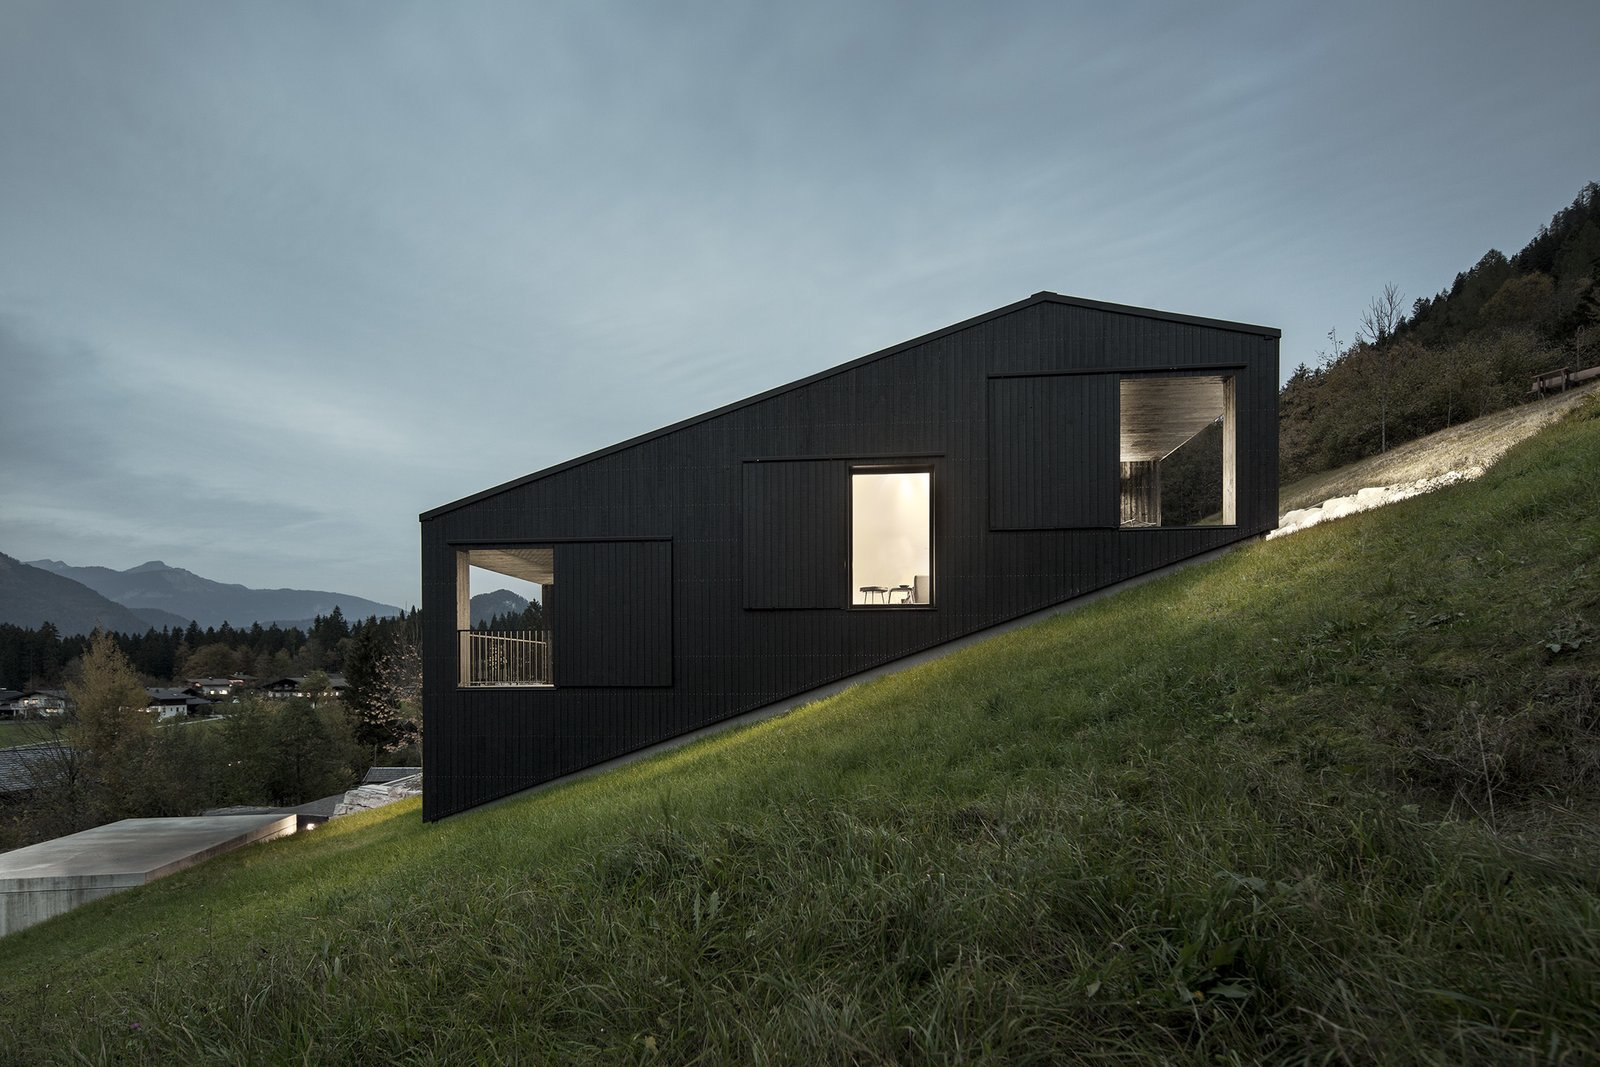 Exterior, Cabin Building Type, Wood Siding Material, and House Building Type Context and Contrast in the Alps | Austria  An Austrian vacation home's design references its mountainside setting and expansive views across the valley. By Tom Lechner / LP Architektur  Best Photos from Cabin Love